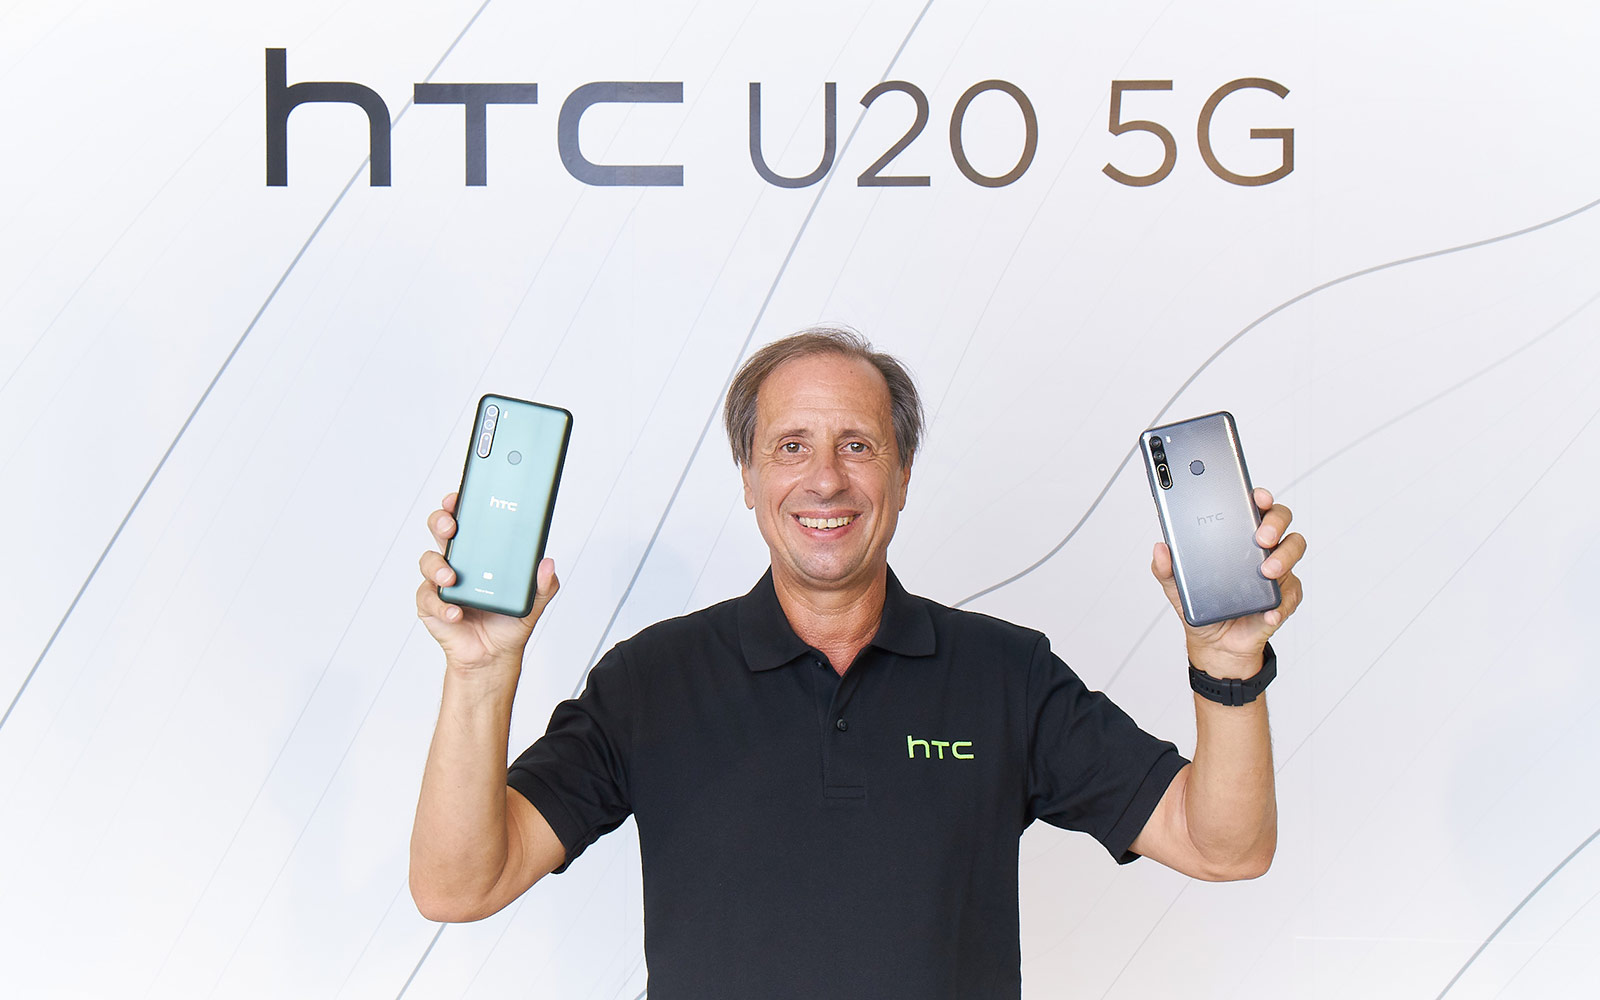 Former HTC President and CEO Yves Maitre at the U20 5G launch event in Taipei.